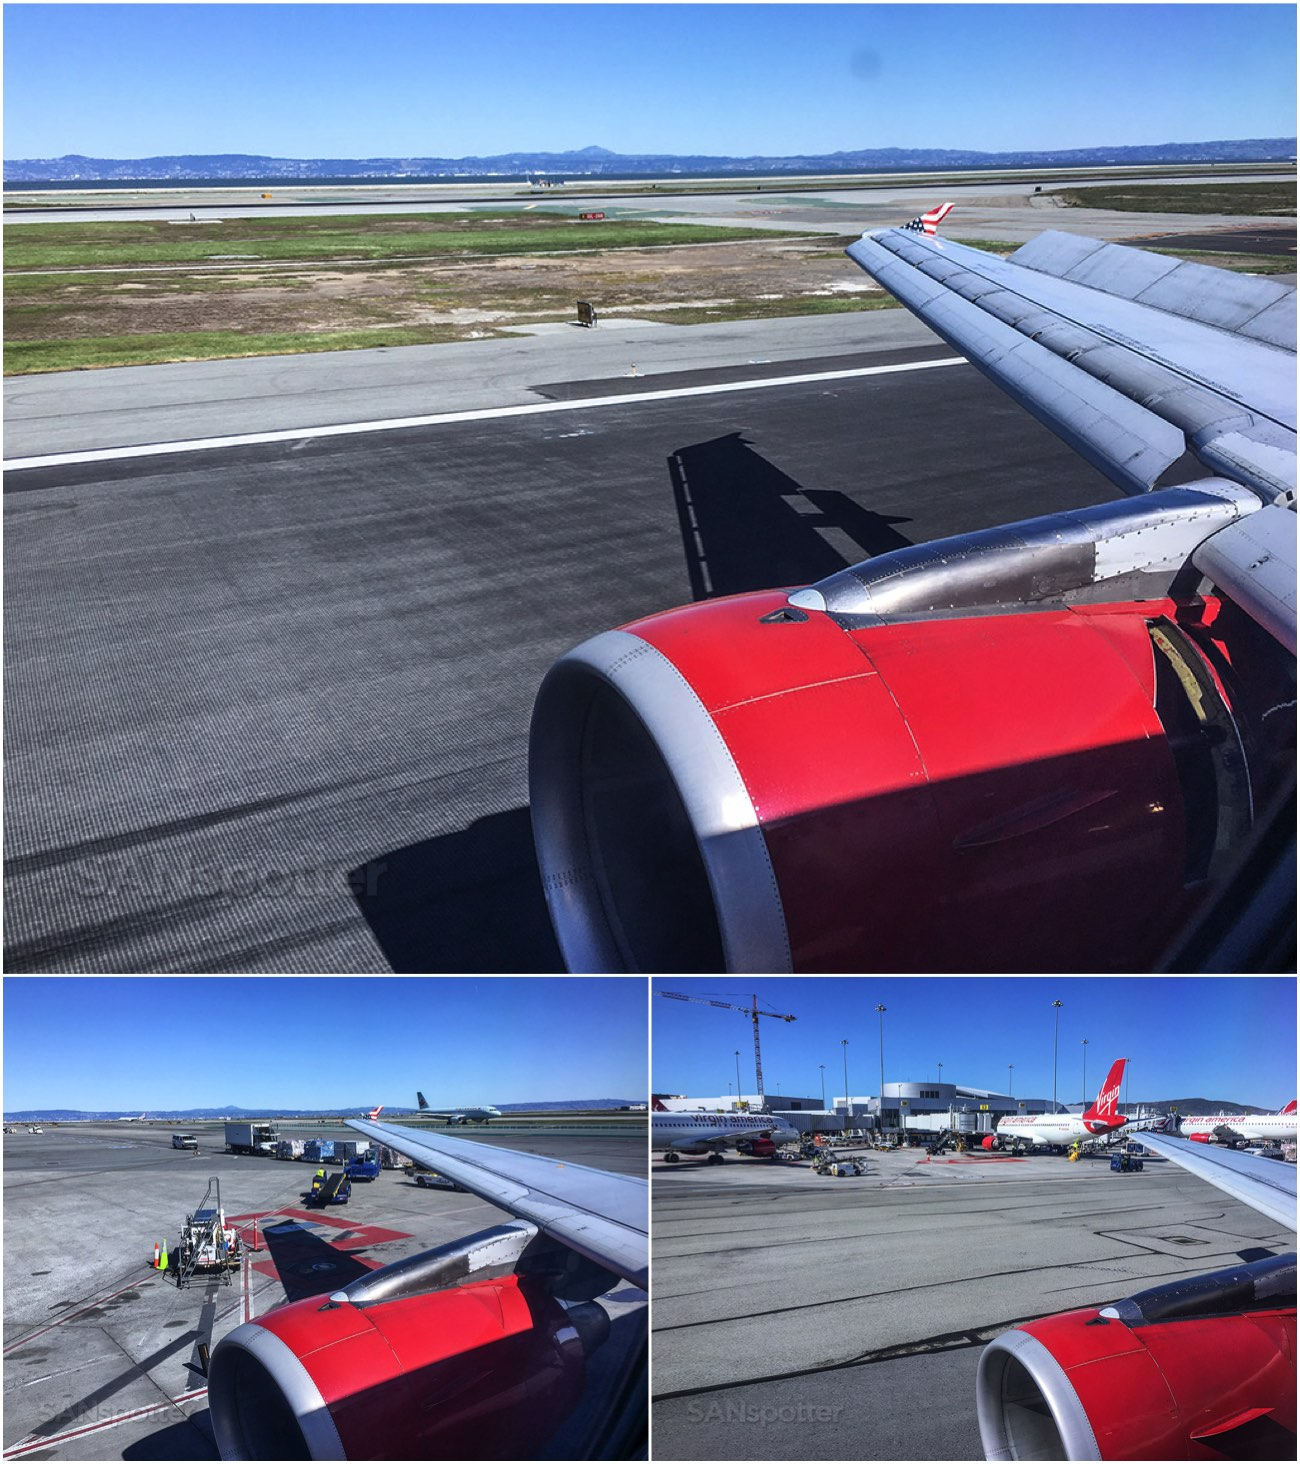 Flying into San Francisco on Virgin America